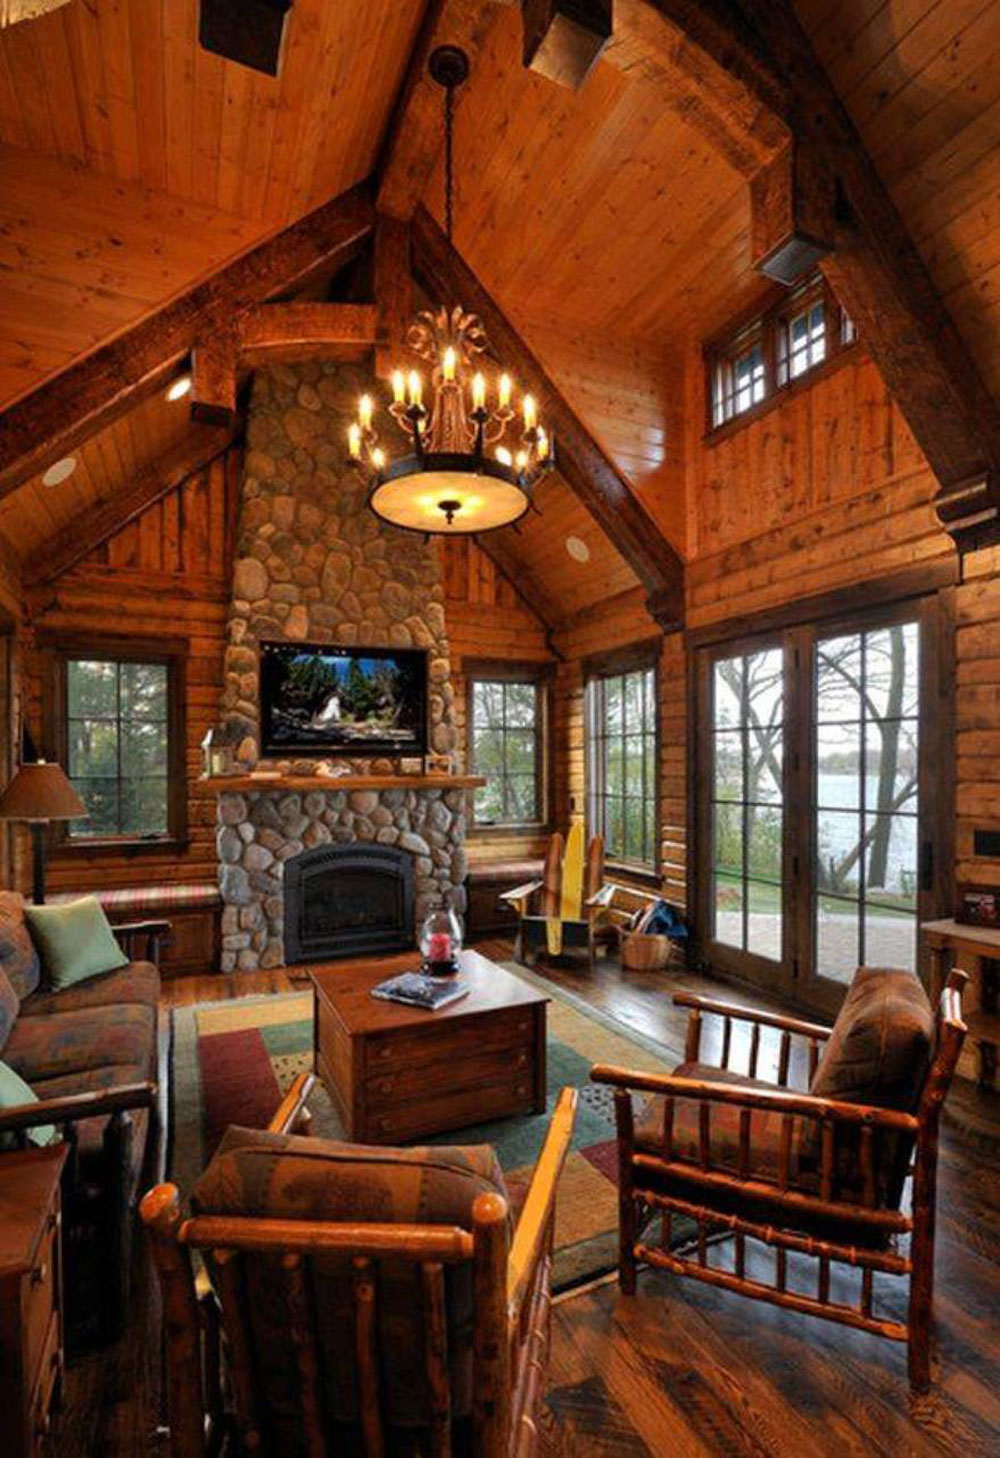 Vaulted ceiling living room design ideas 10 vaulted ceiling living